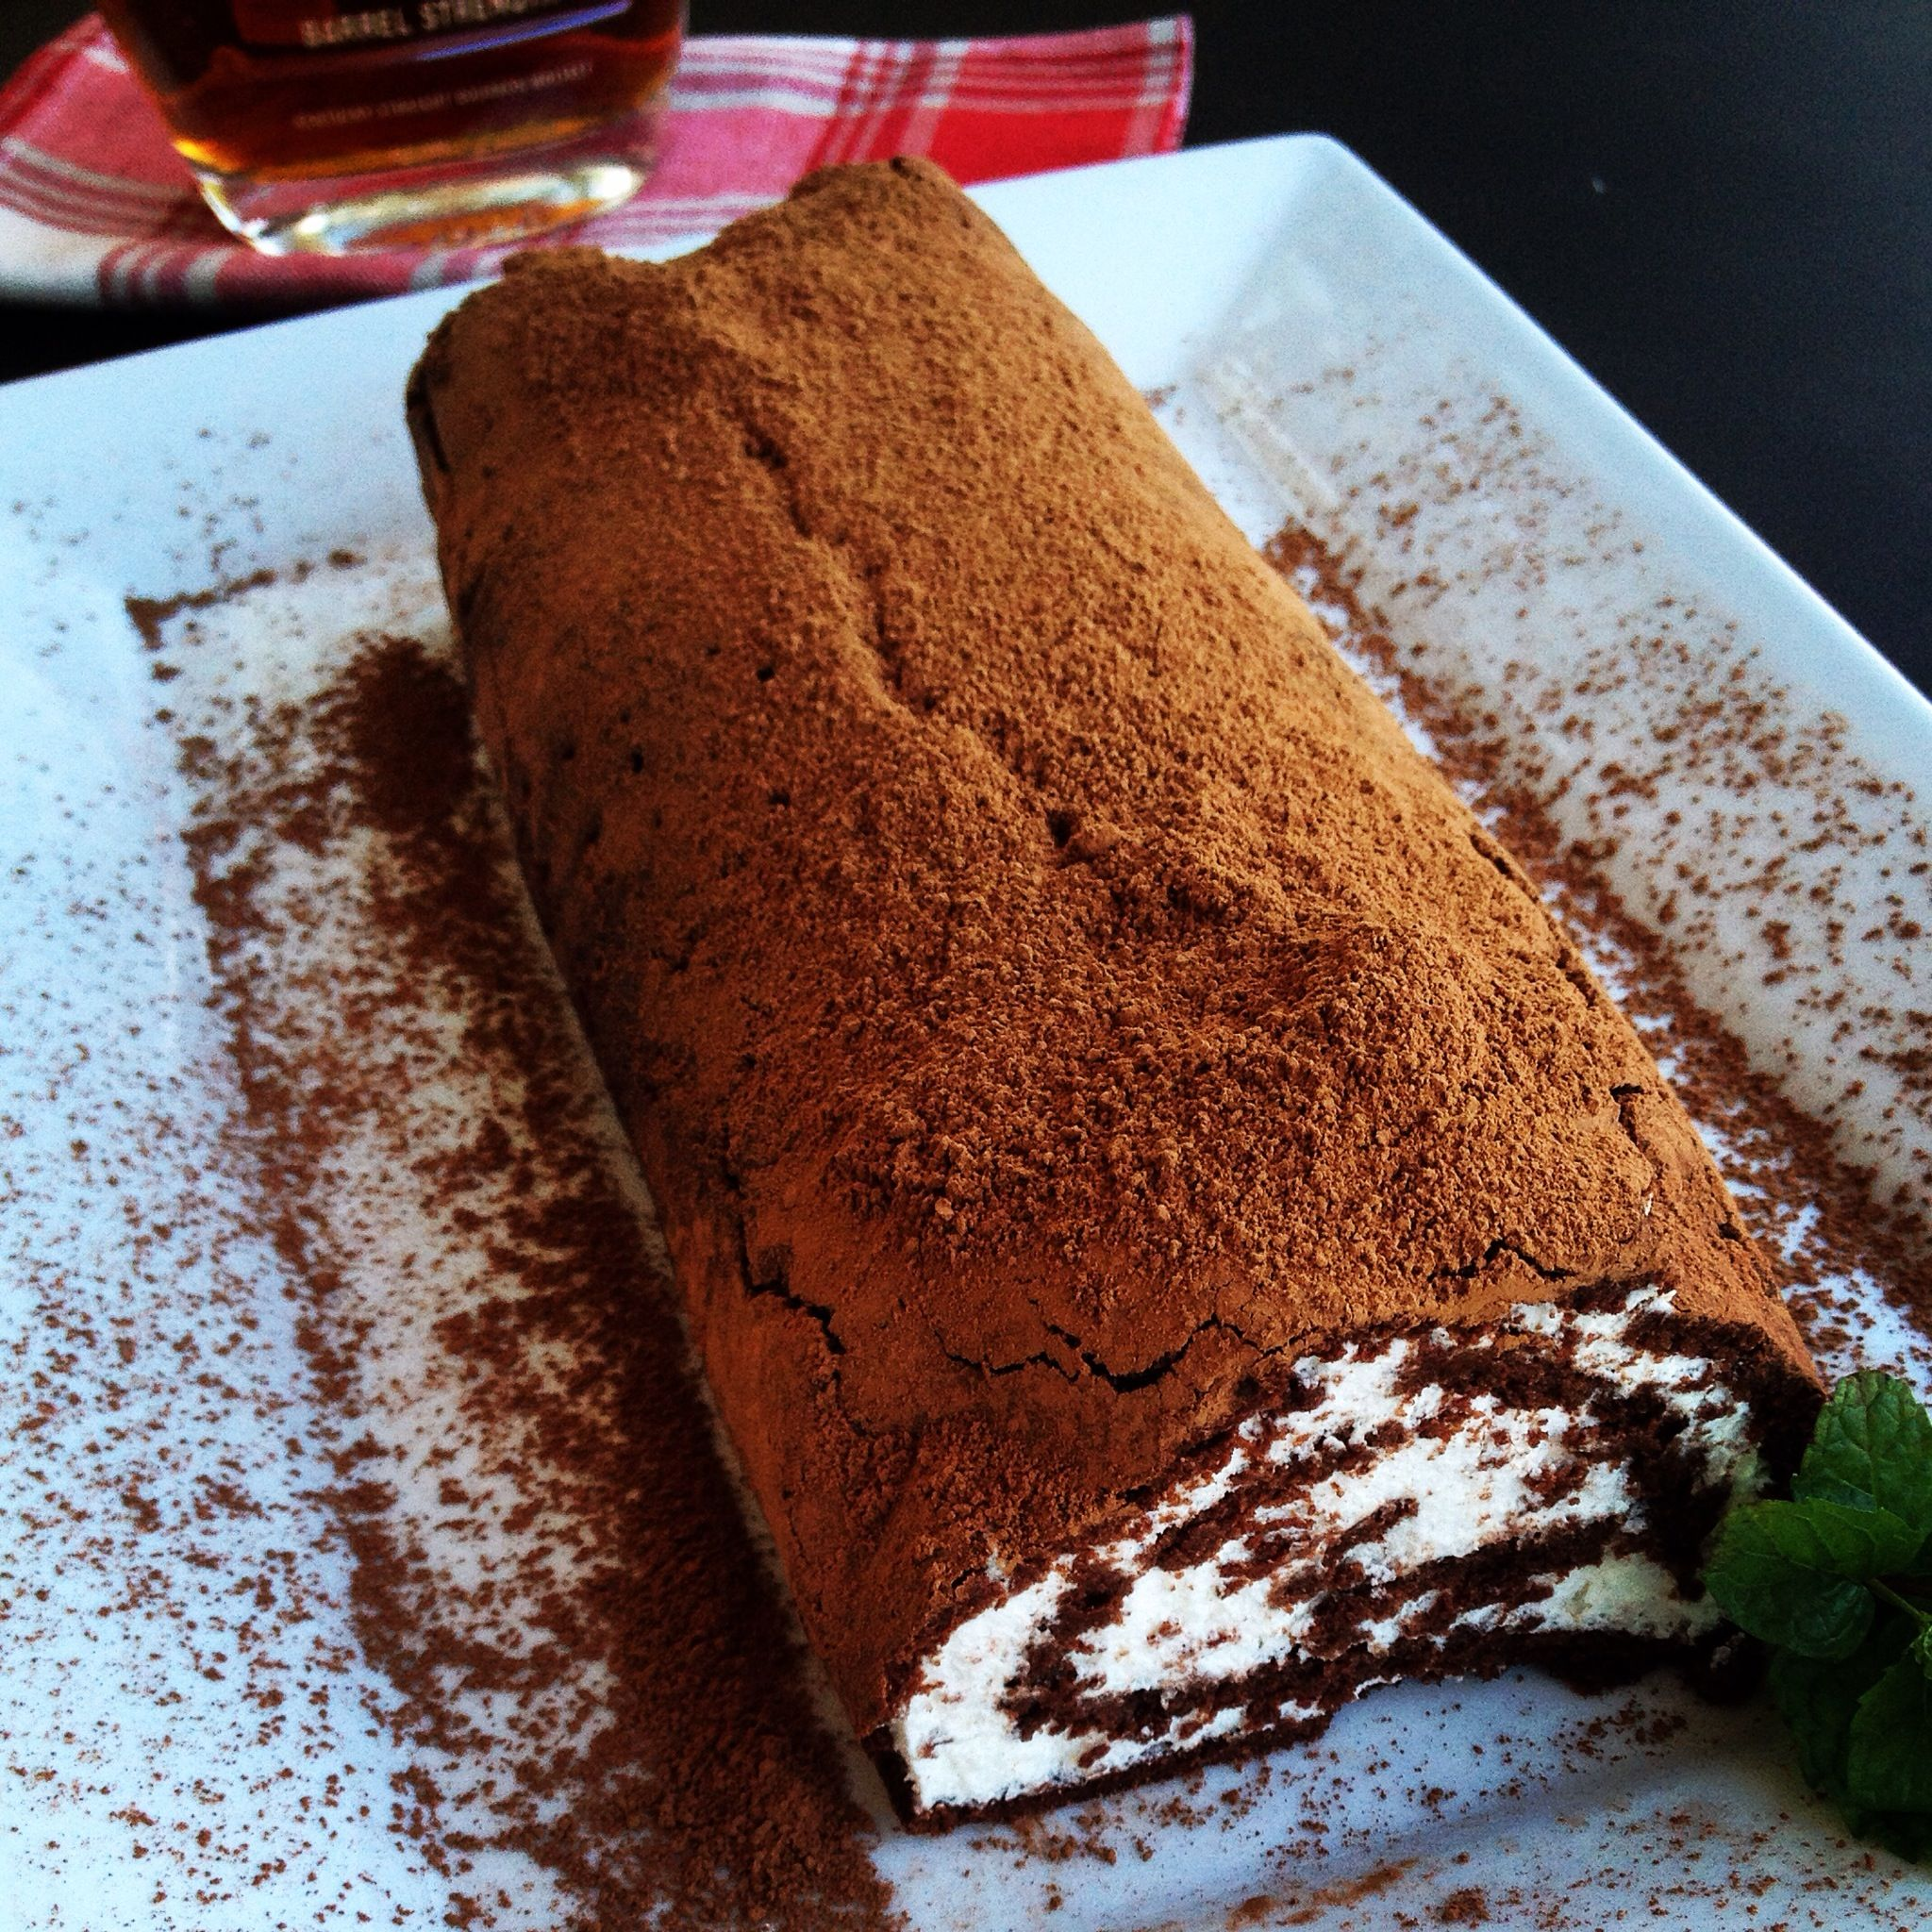 Recipe my chocolate roulage roulade from food network star jan 18 2016 desserts recipes chocolate roulage recipe food network star recipes forumfinder Gallery